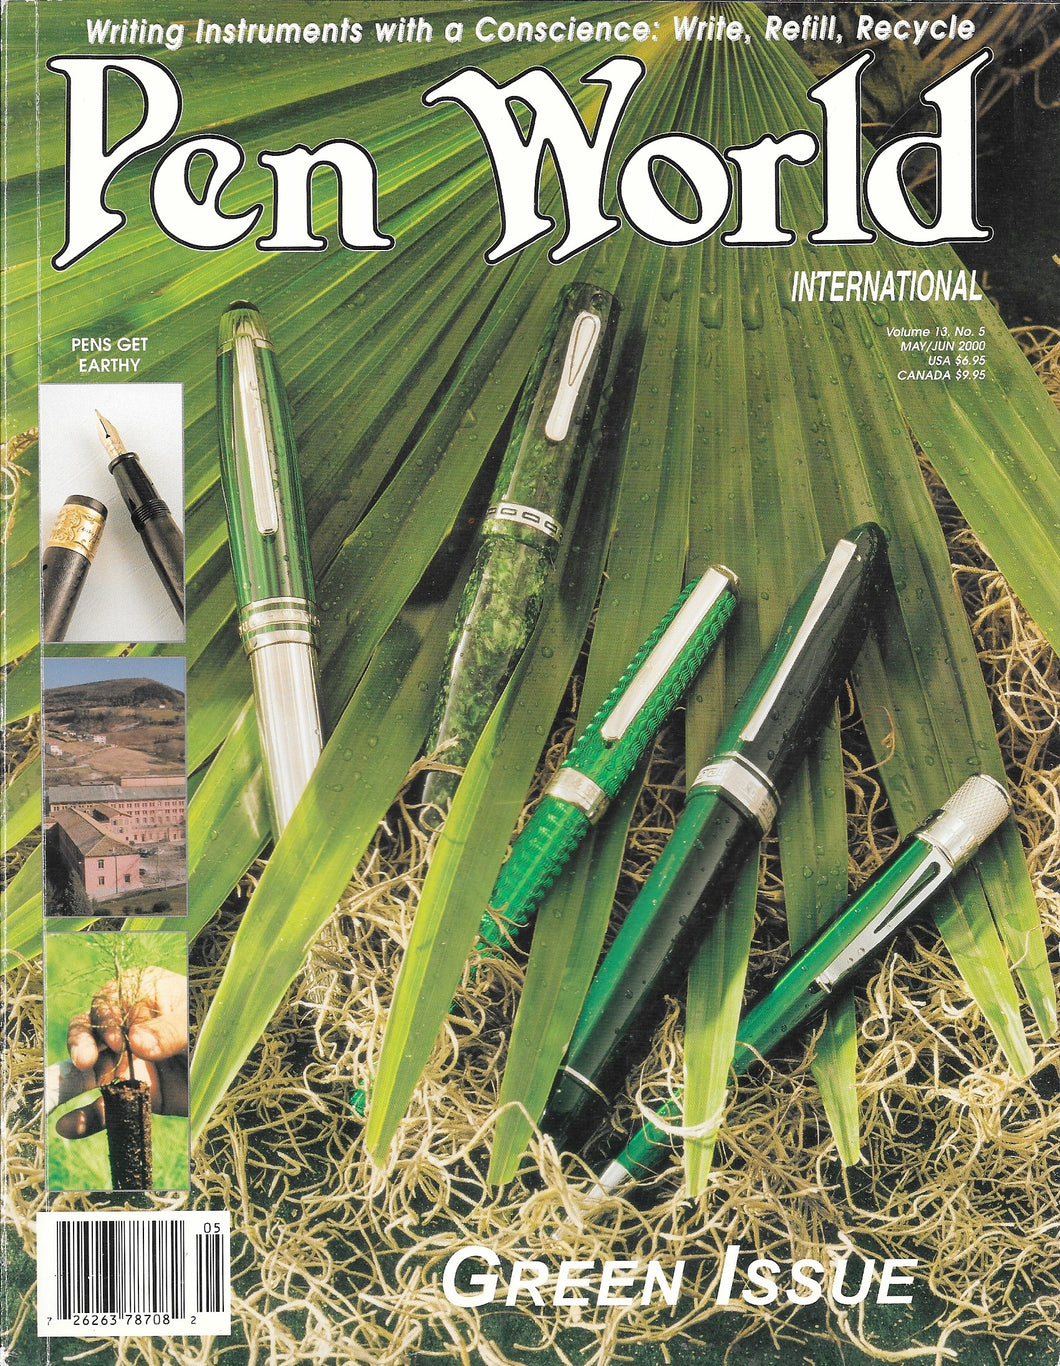 Pen World, Back Issues. May/June 2000 Vol.13. No.5